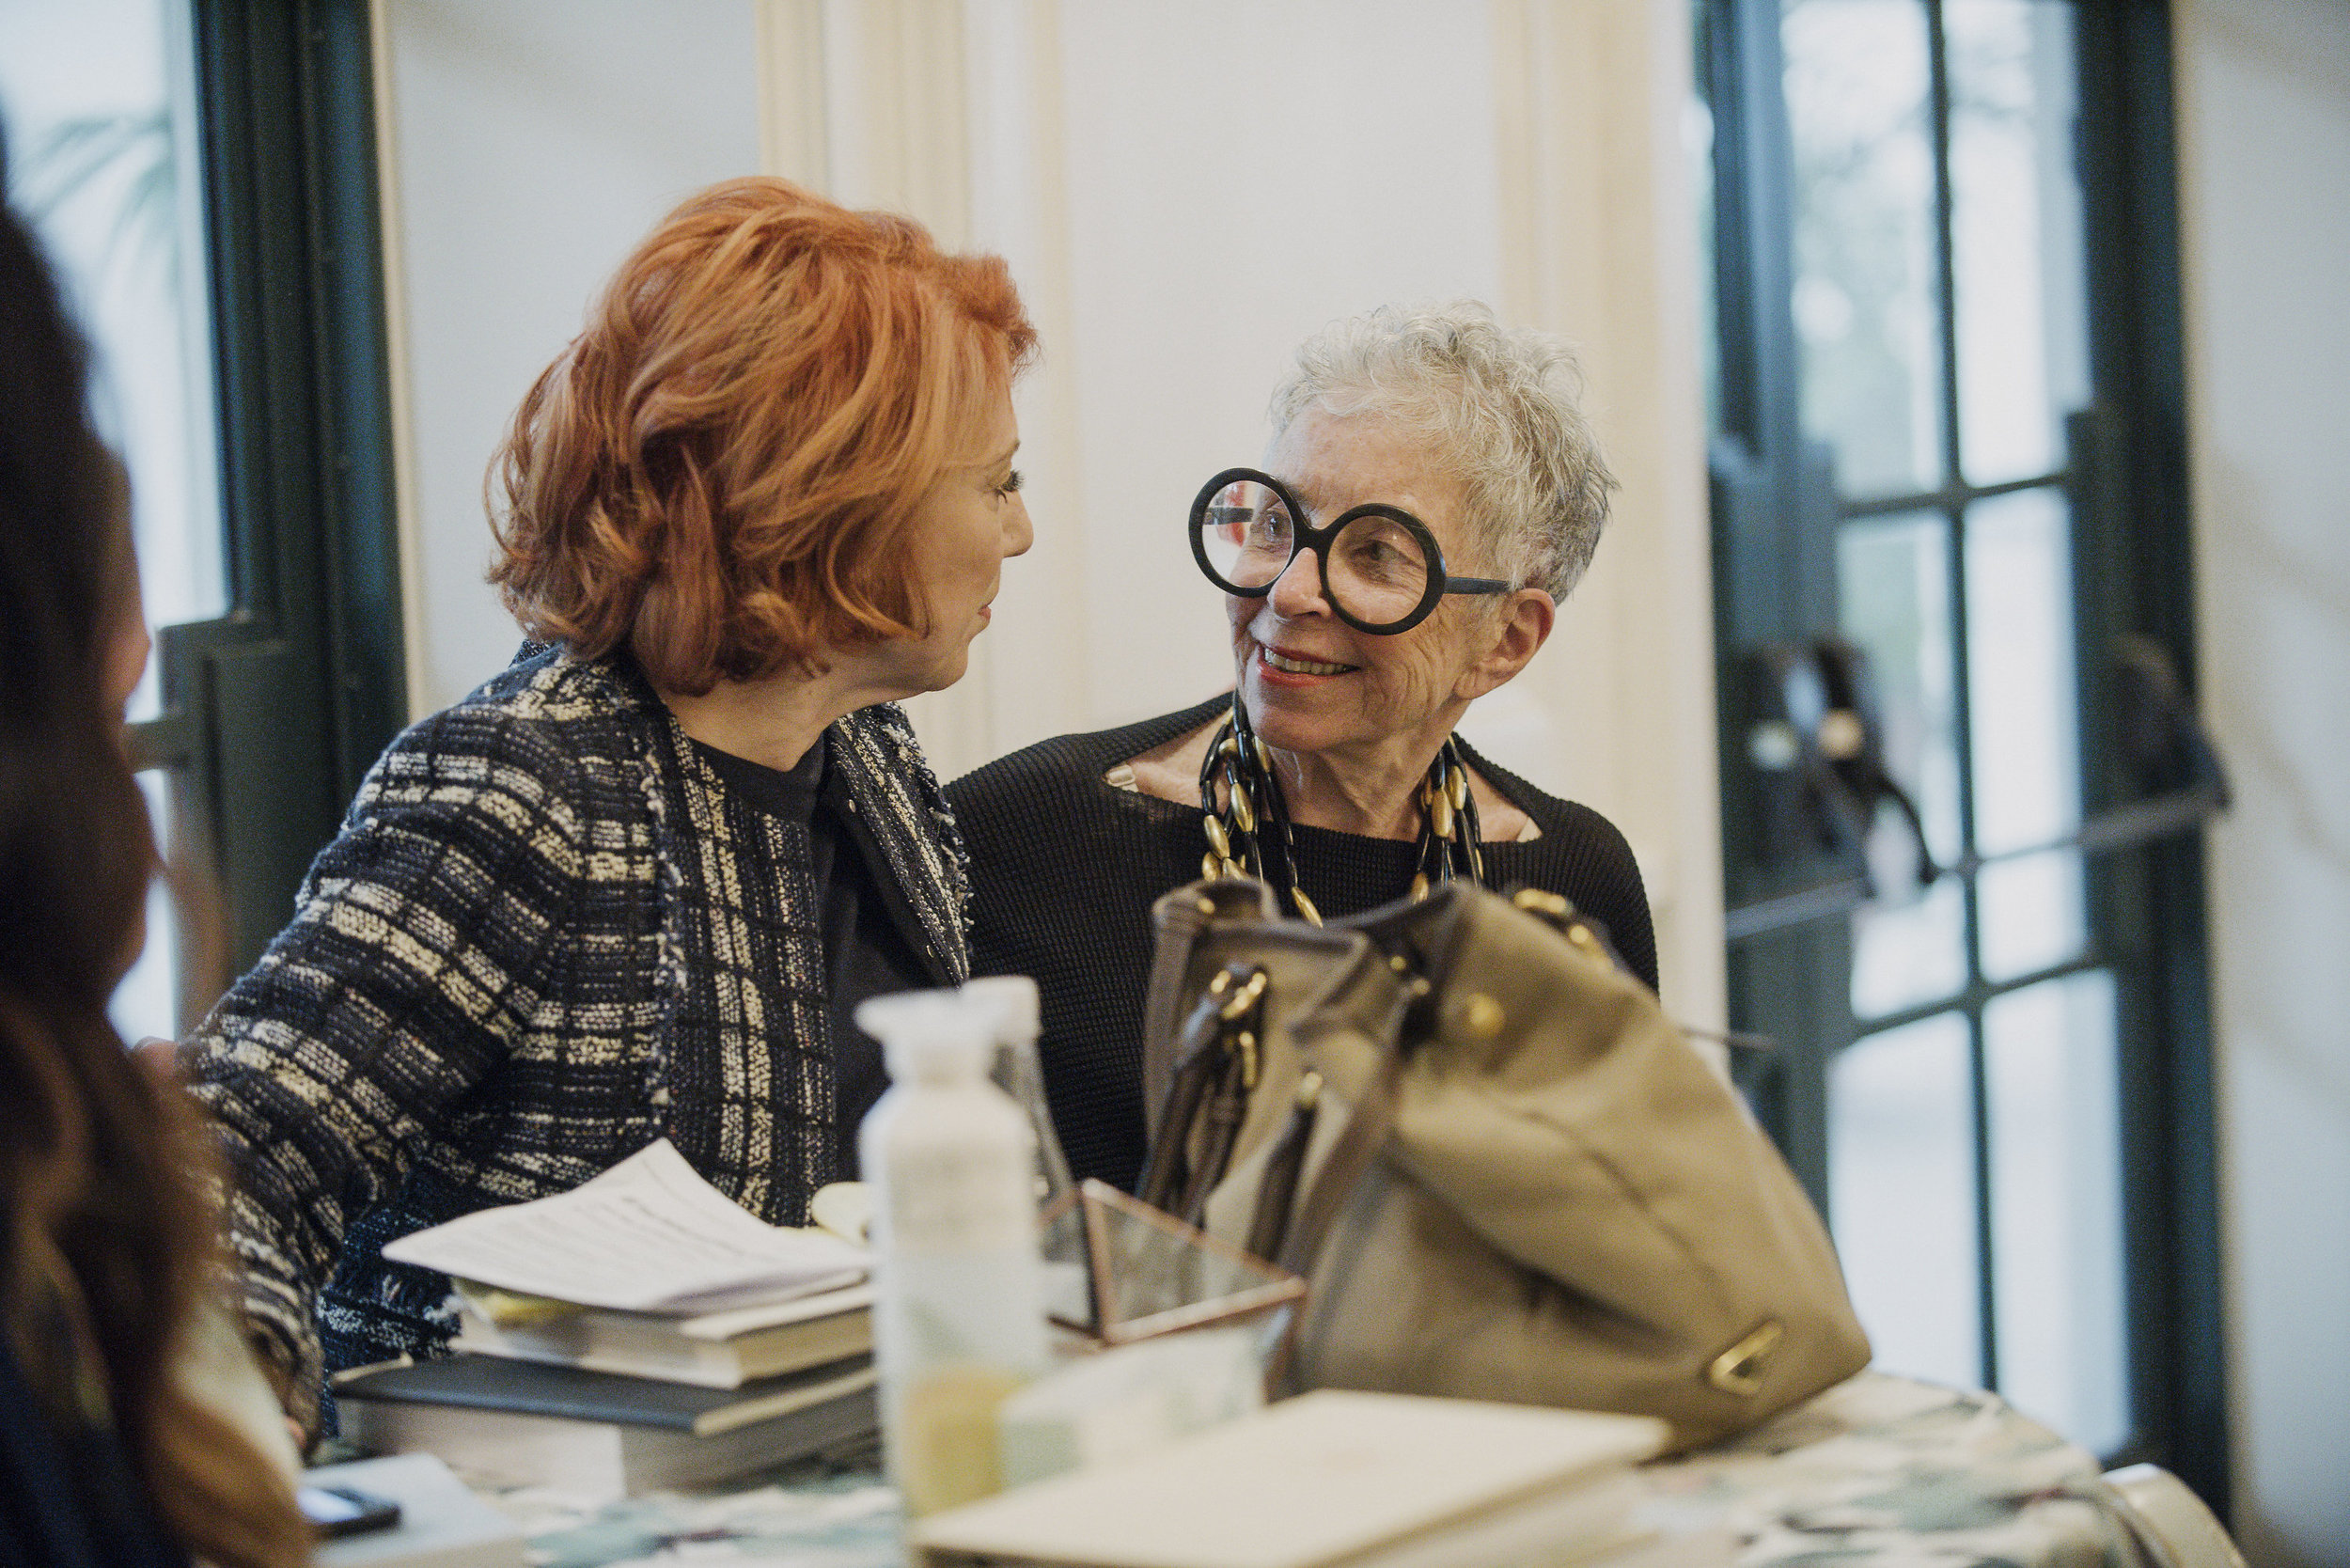 Marcy Blum chatting with the one and only Sylvia Weinstock  Photo by Gigi de Manio